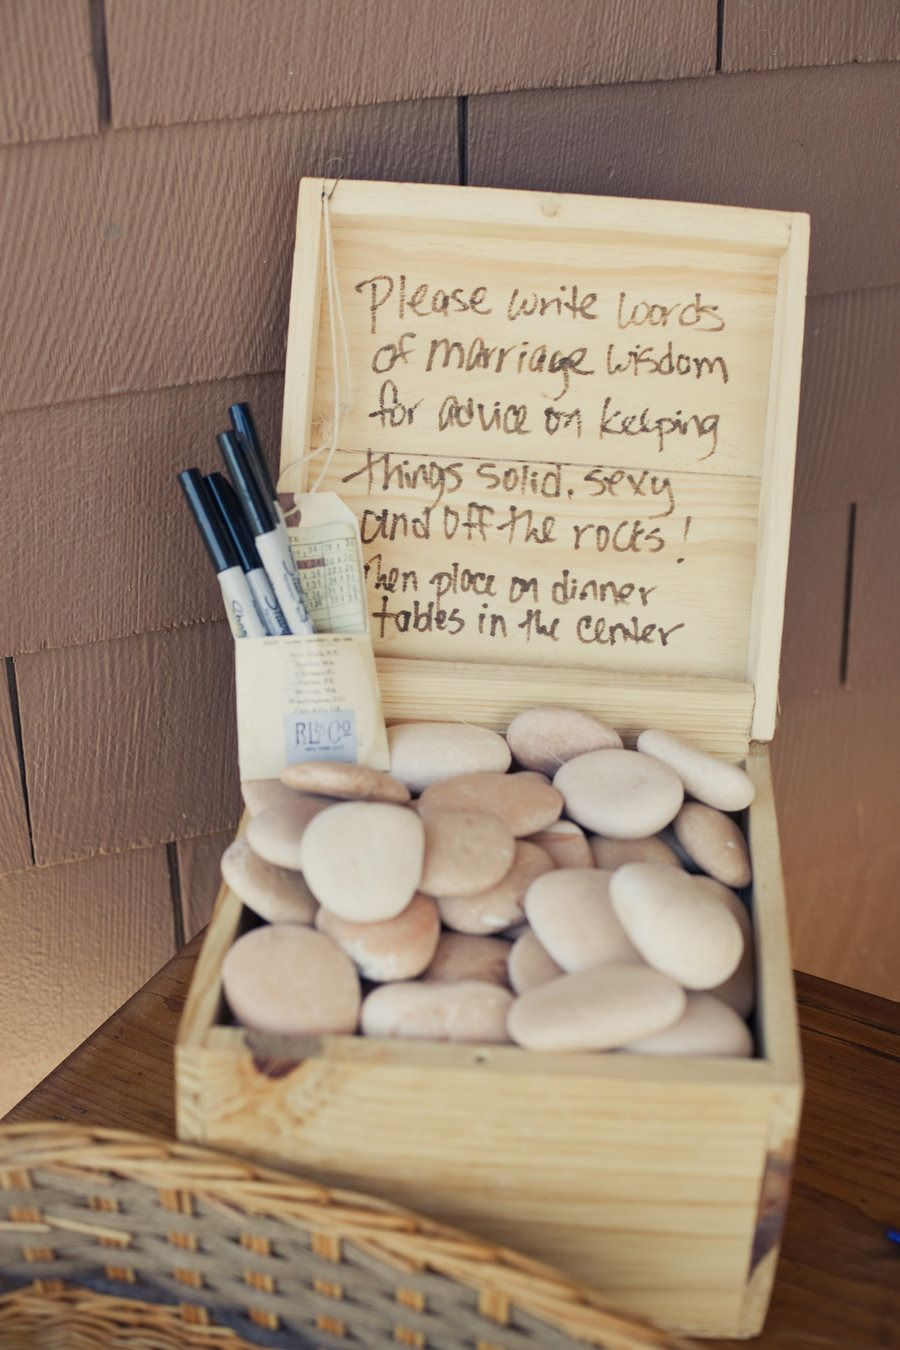 Rock guest book - perfect for a beach wedding!